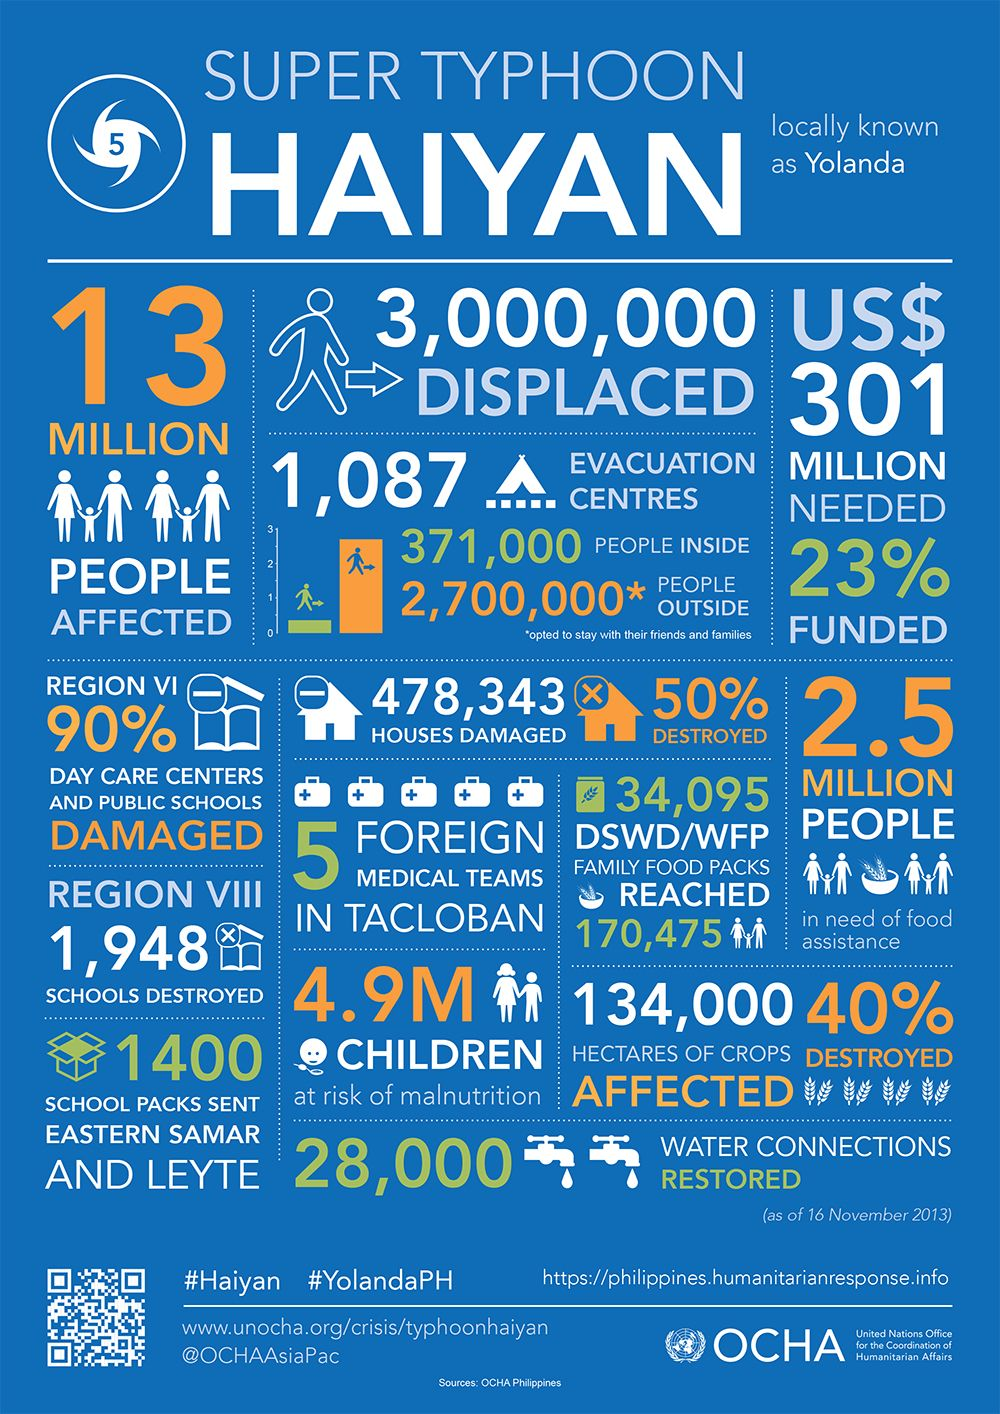 Help Super Typhoon Haiyan Relief Efforts Philippines Natural Disasters Facts